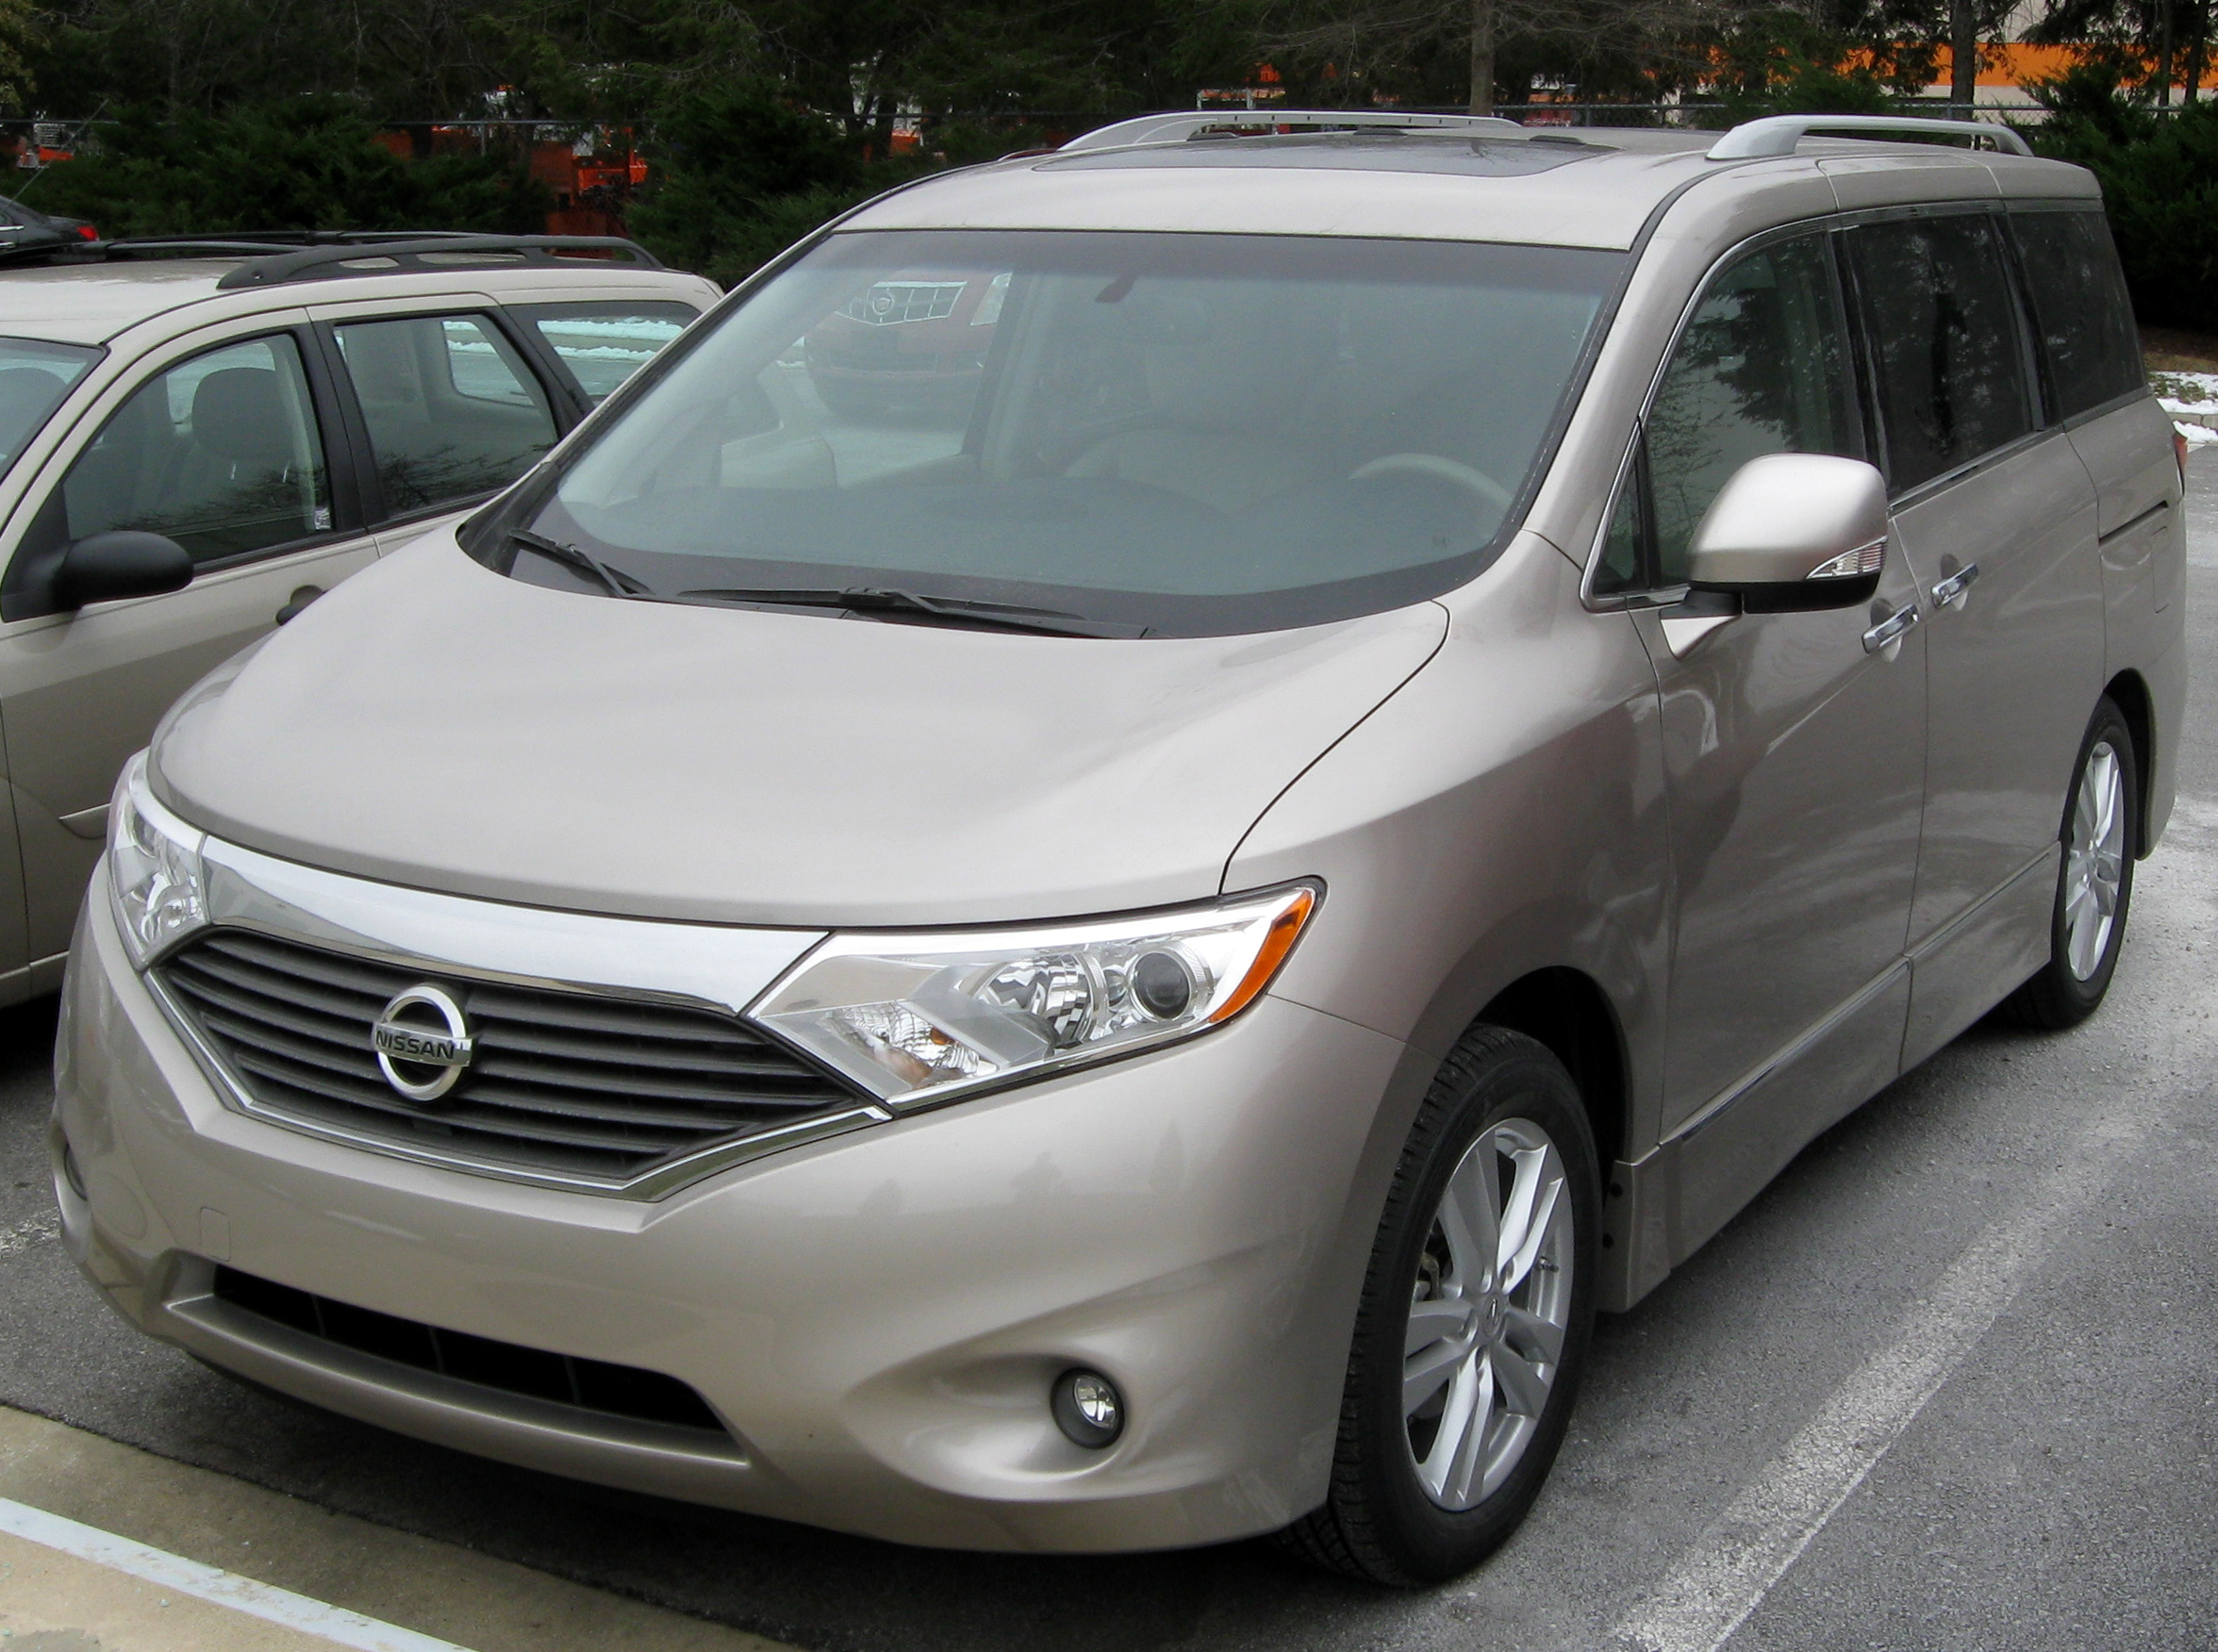 2011 nissan quest information and photos momentcar nissan quest 2011 8 vanachro Gallery